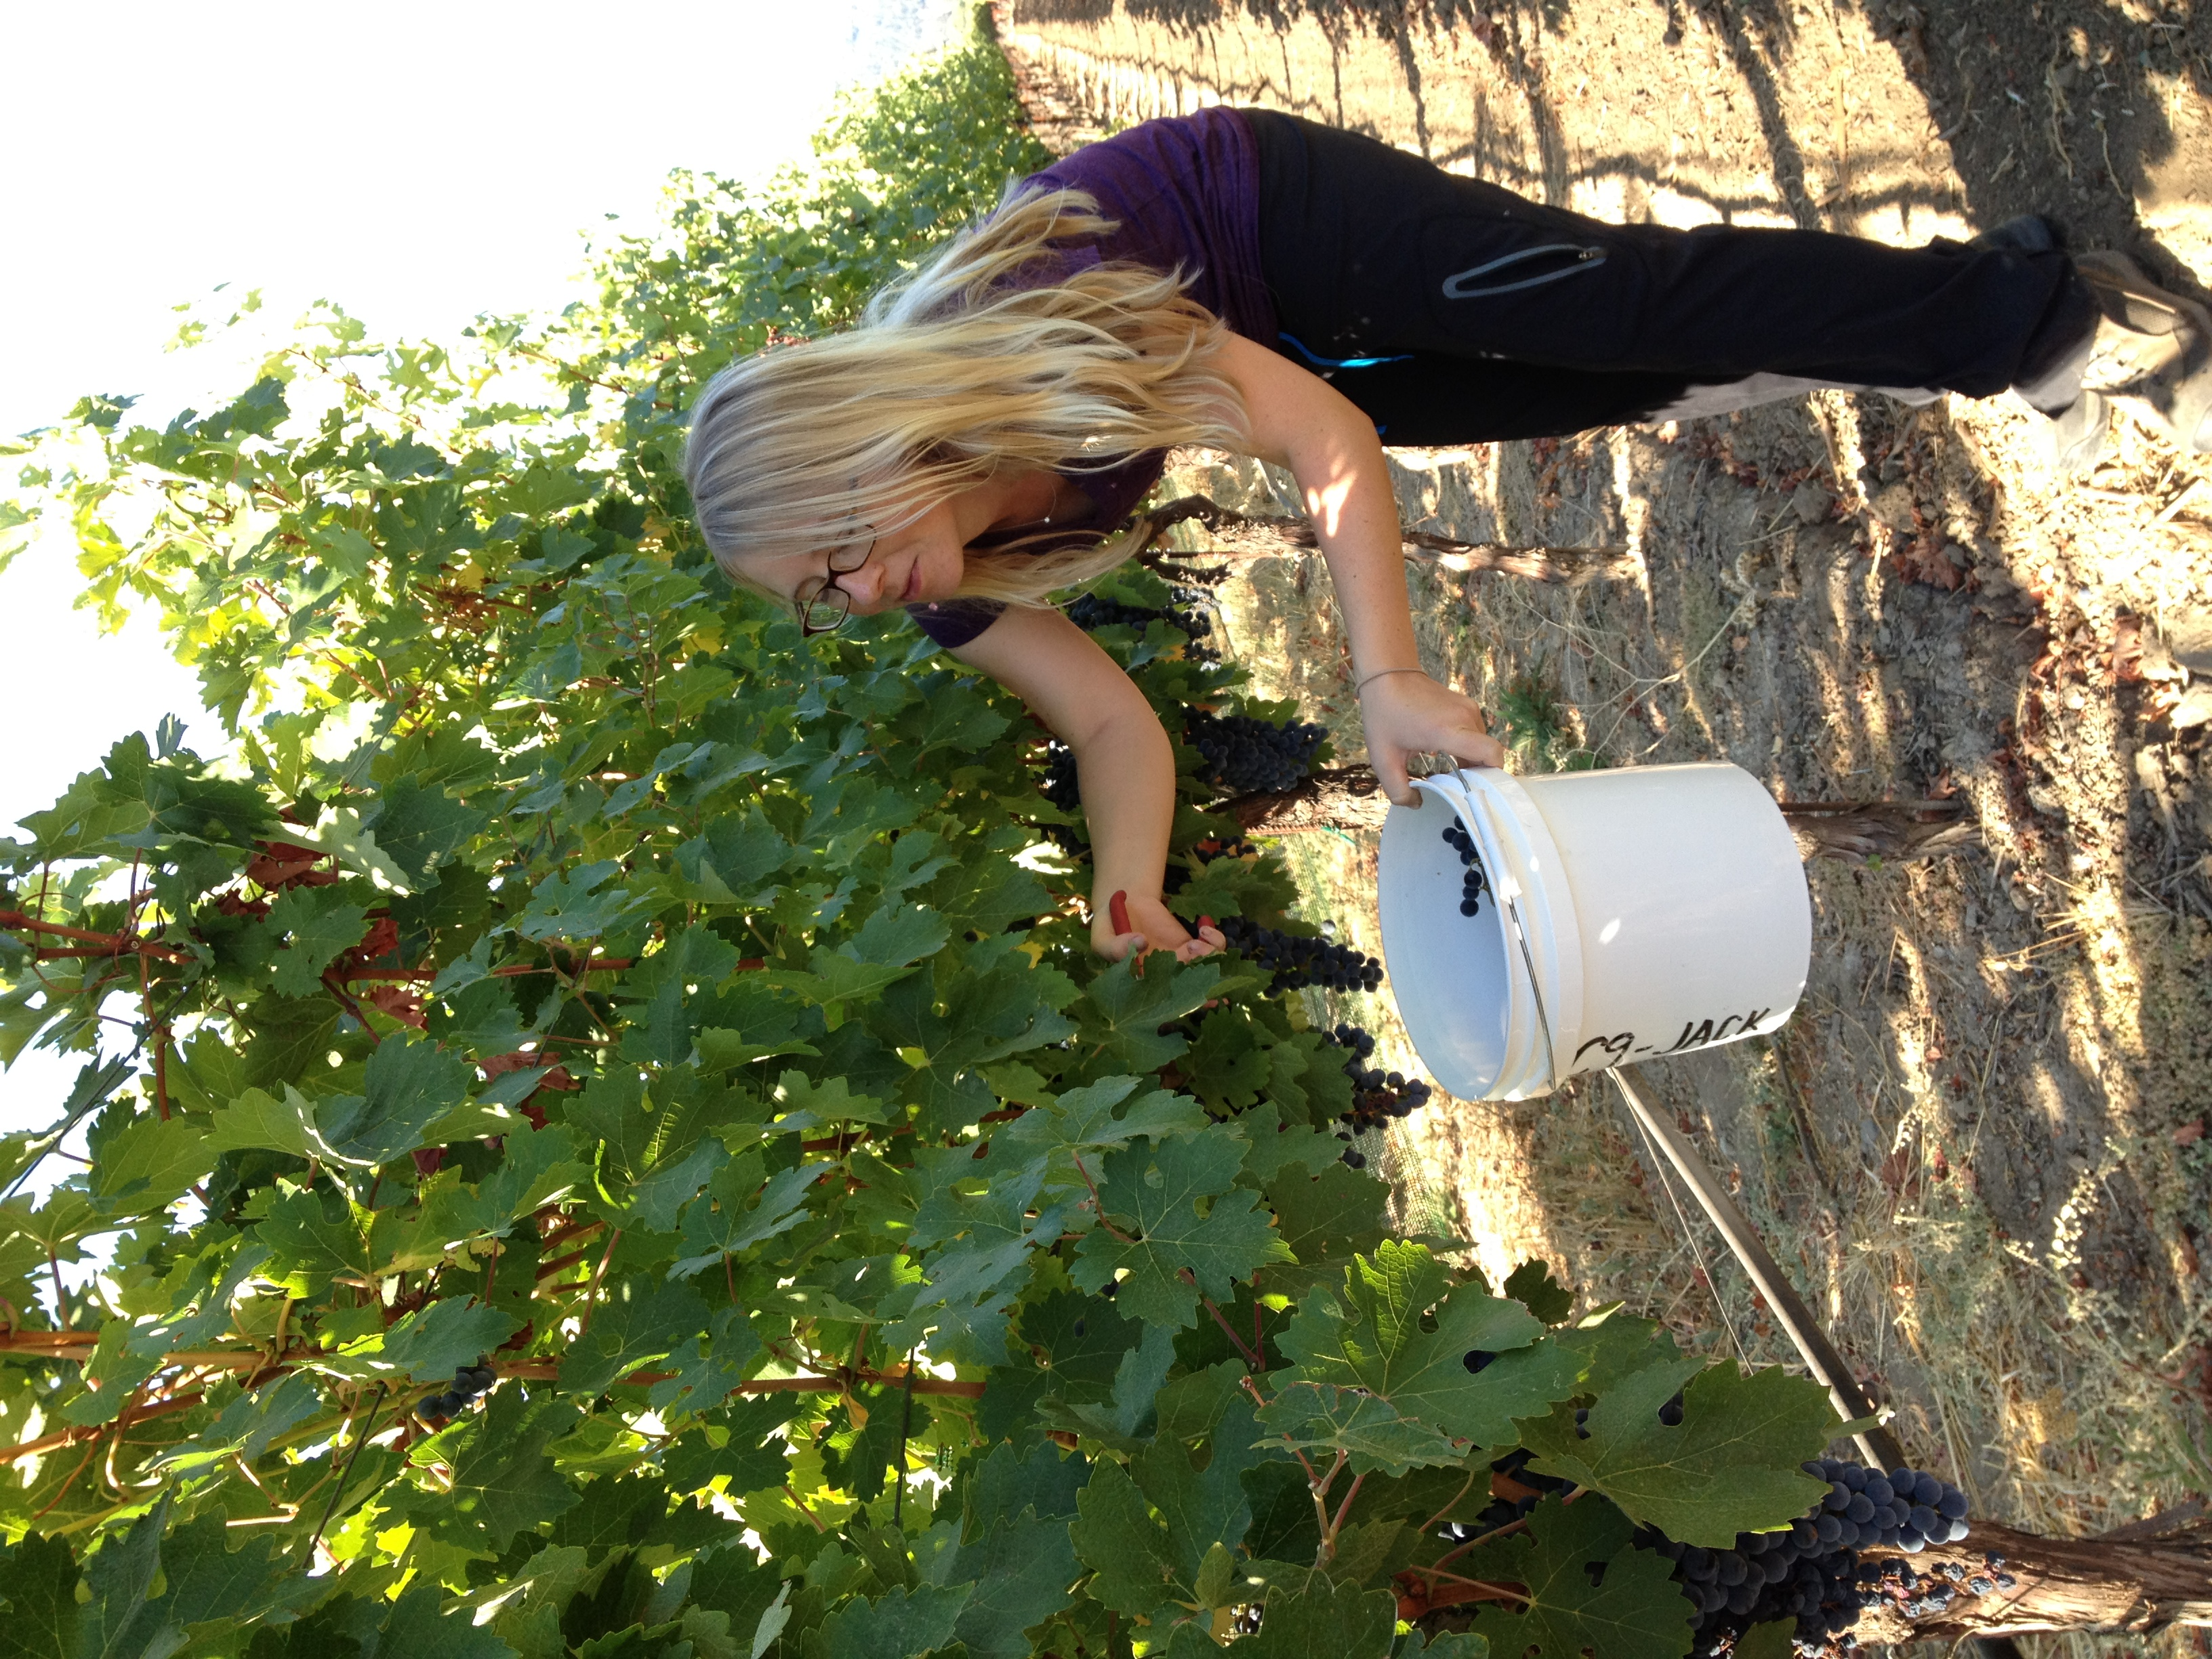 Alex on the vineyard taking grape samples to test for brix levels & pH balance